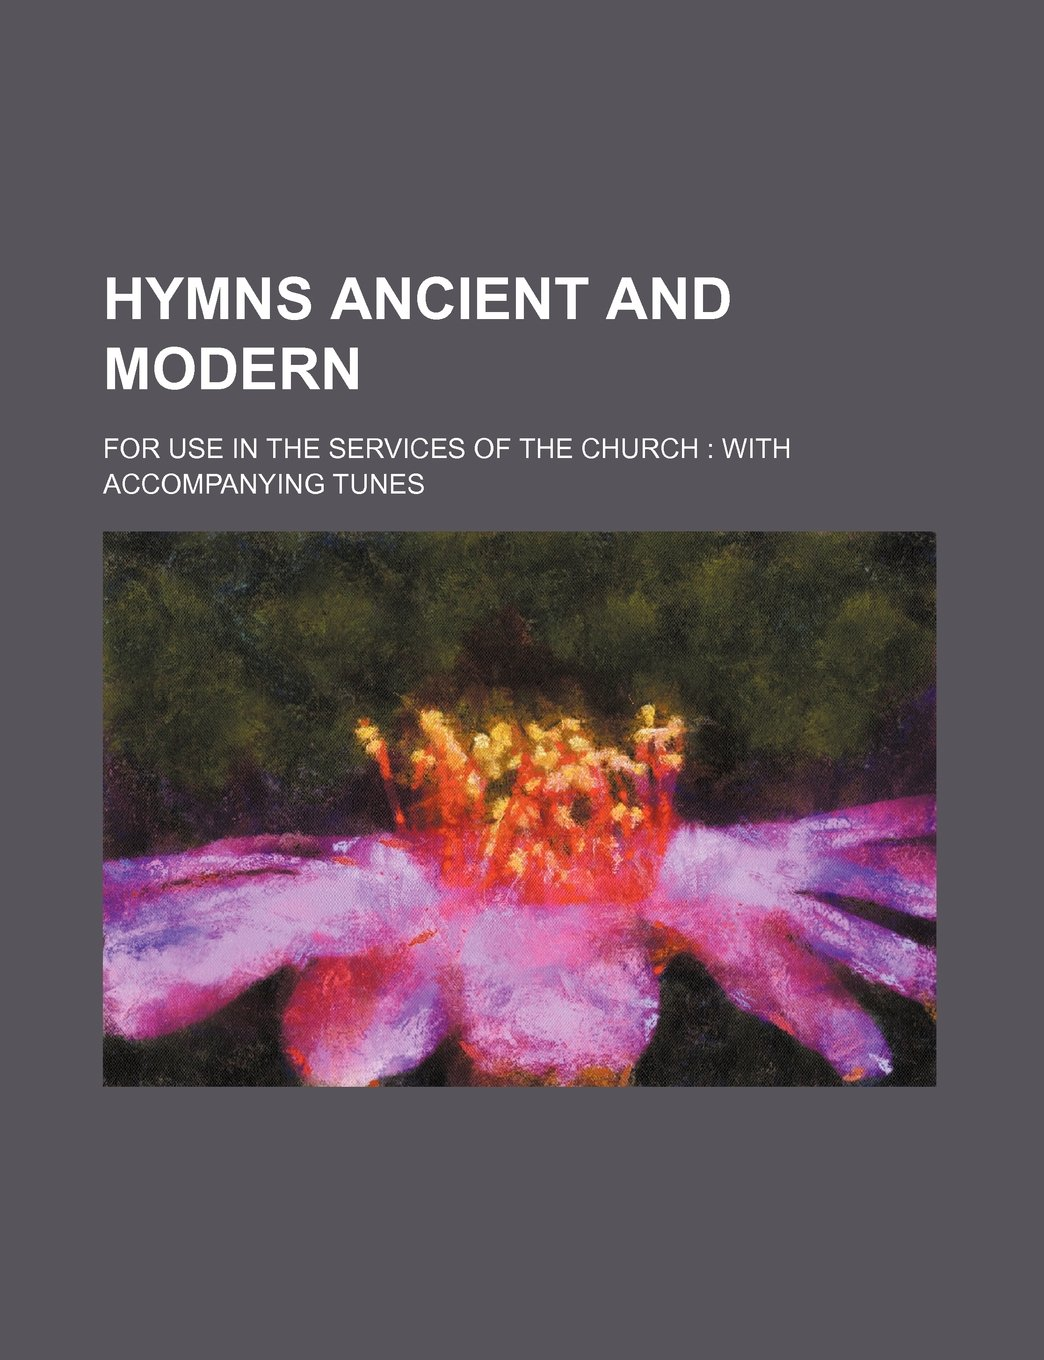 Amazon.in: Buy Hymns Ancient and Modern; For Use in the Services of the  Church with Accompanying Tunes Book Online at Low Prices in India | Hymns  Ancient ...